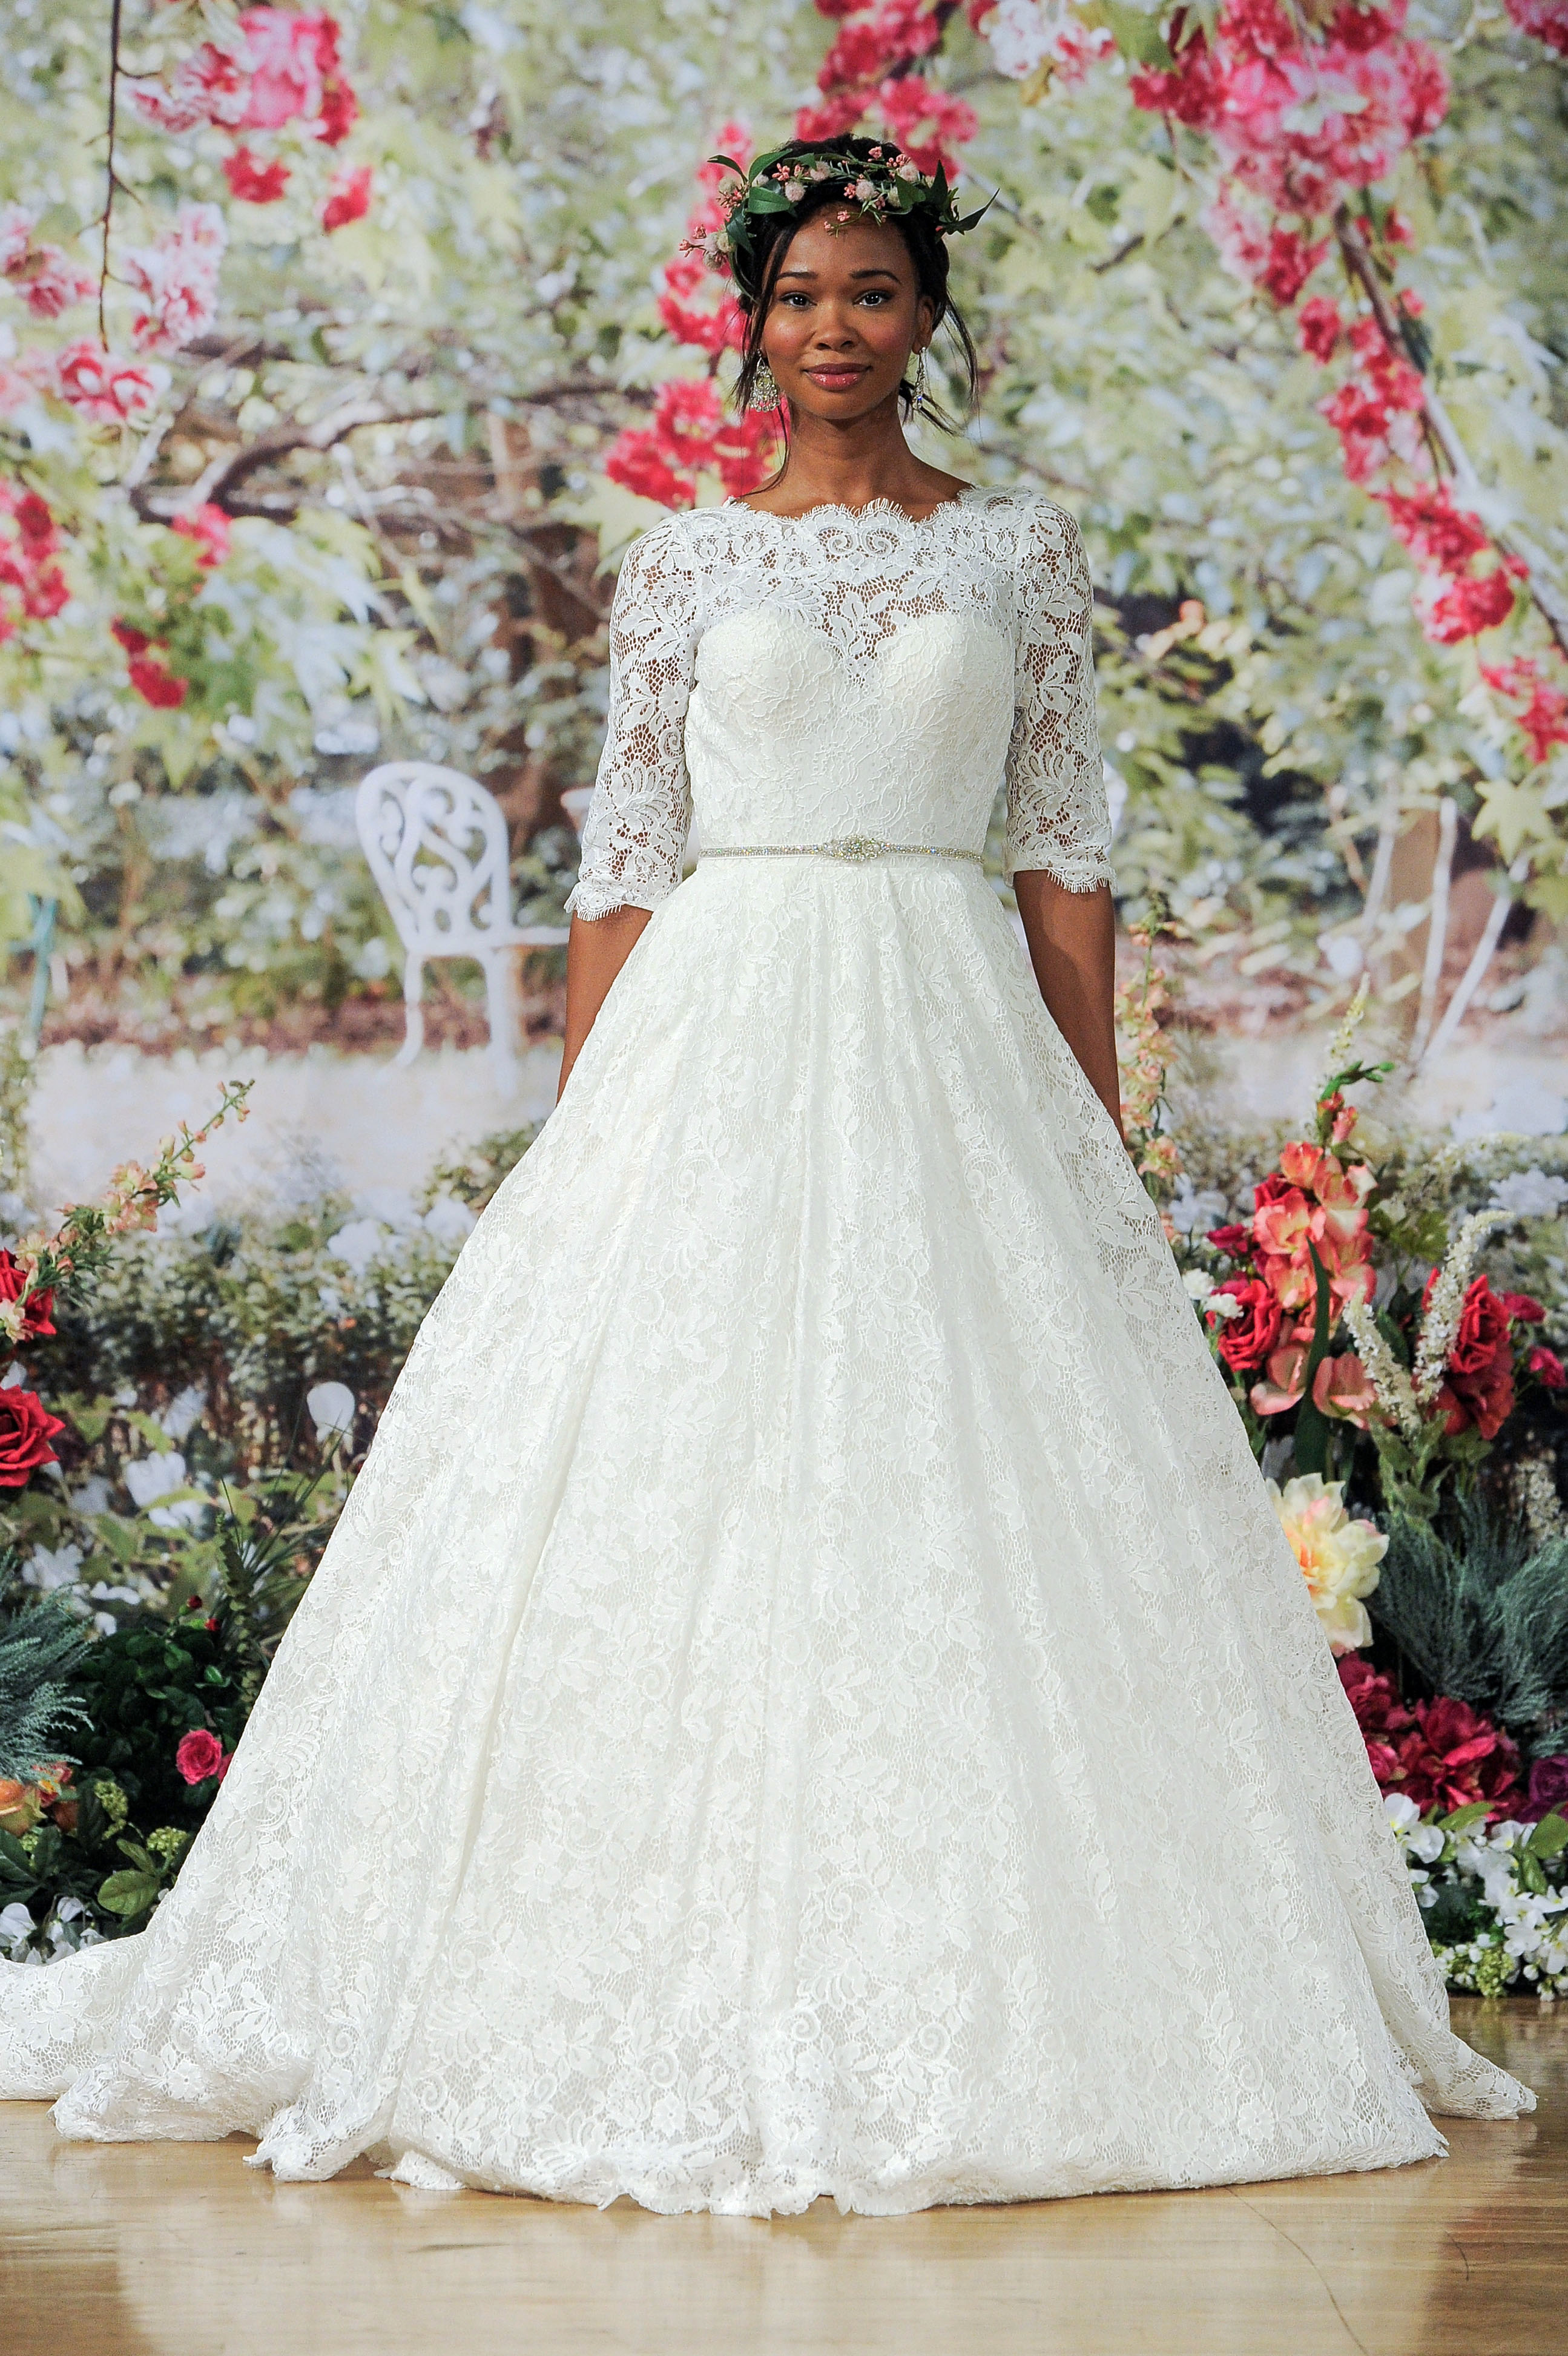 Maggie Sottero Fall 2017 Quarter-Sleeved Wedding Dress with Lace